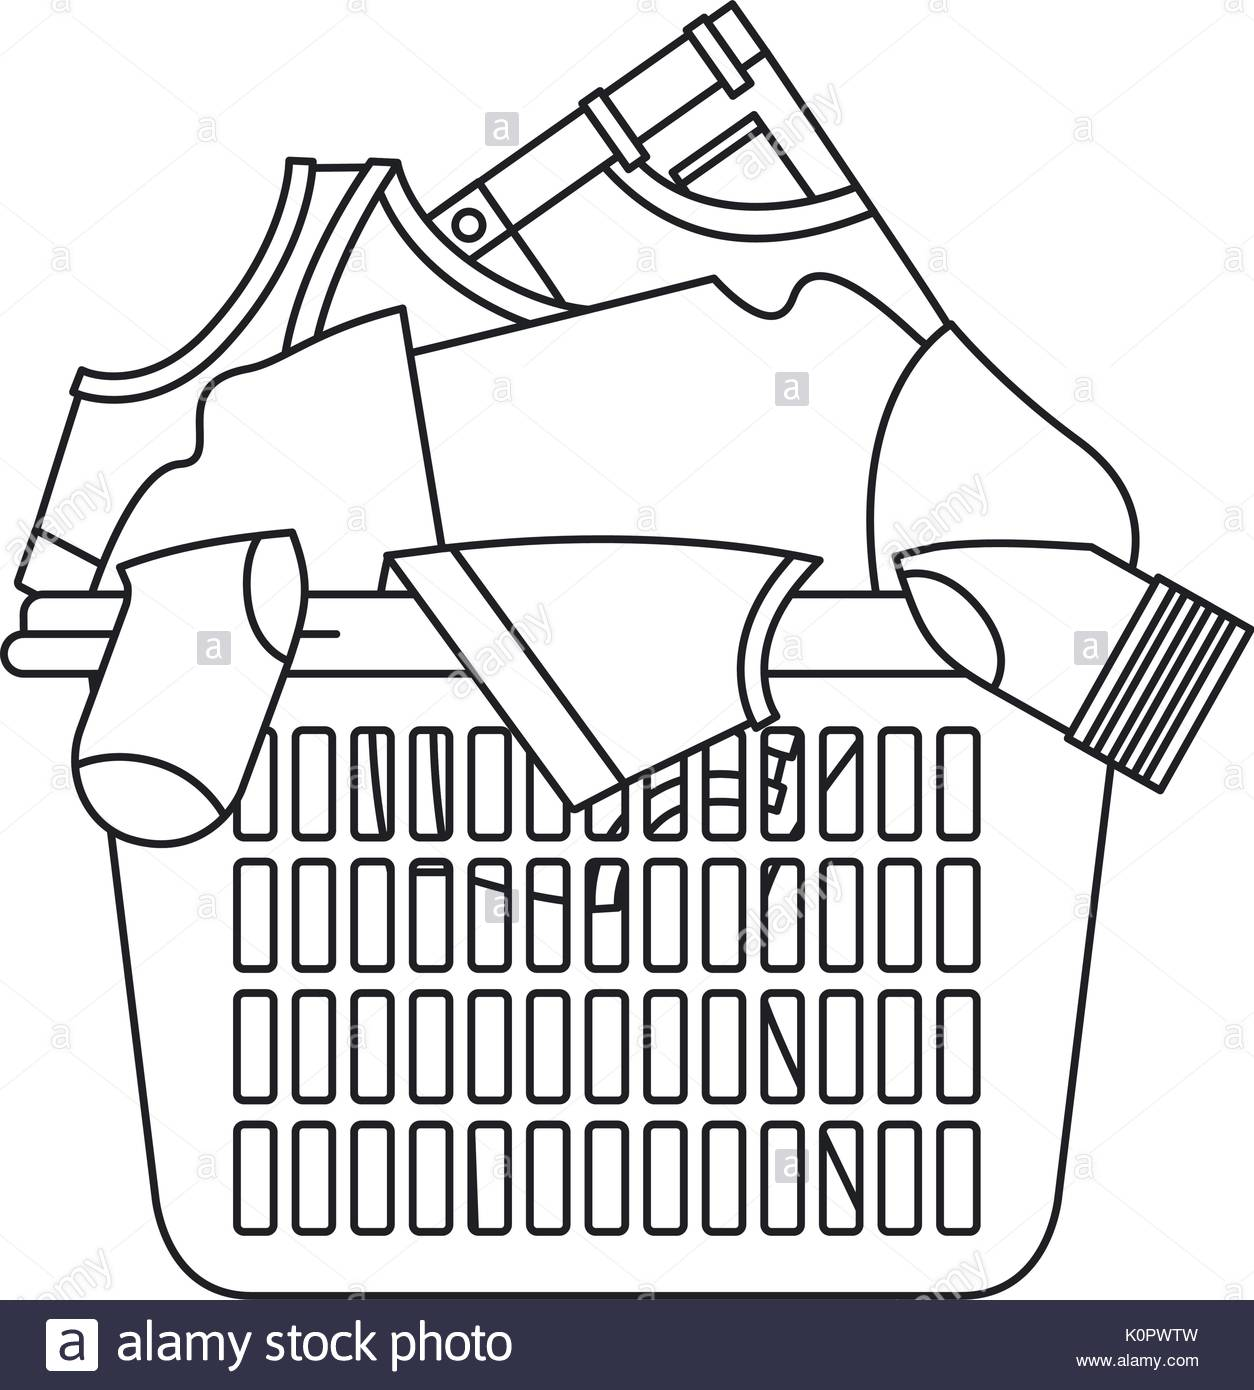 Laundry basket drawing at free for for Laundry coloring pages